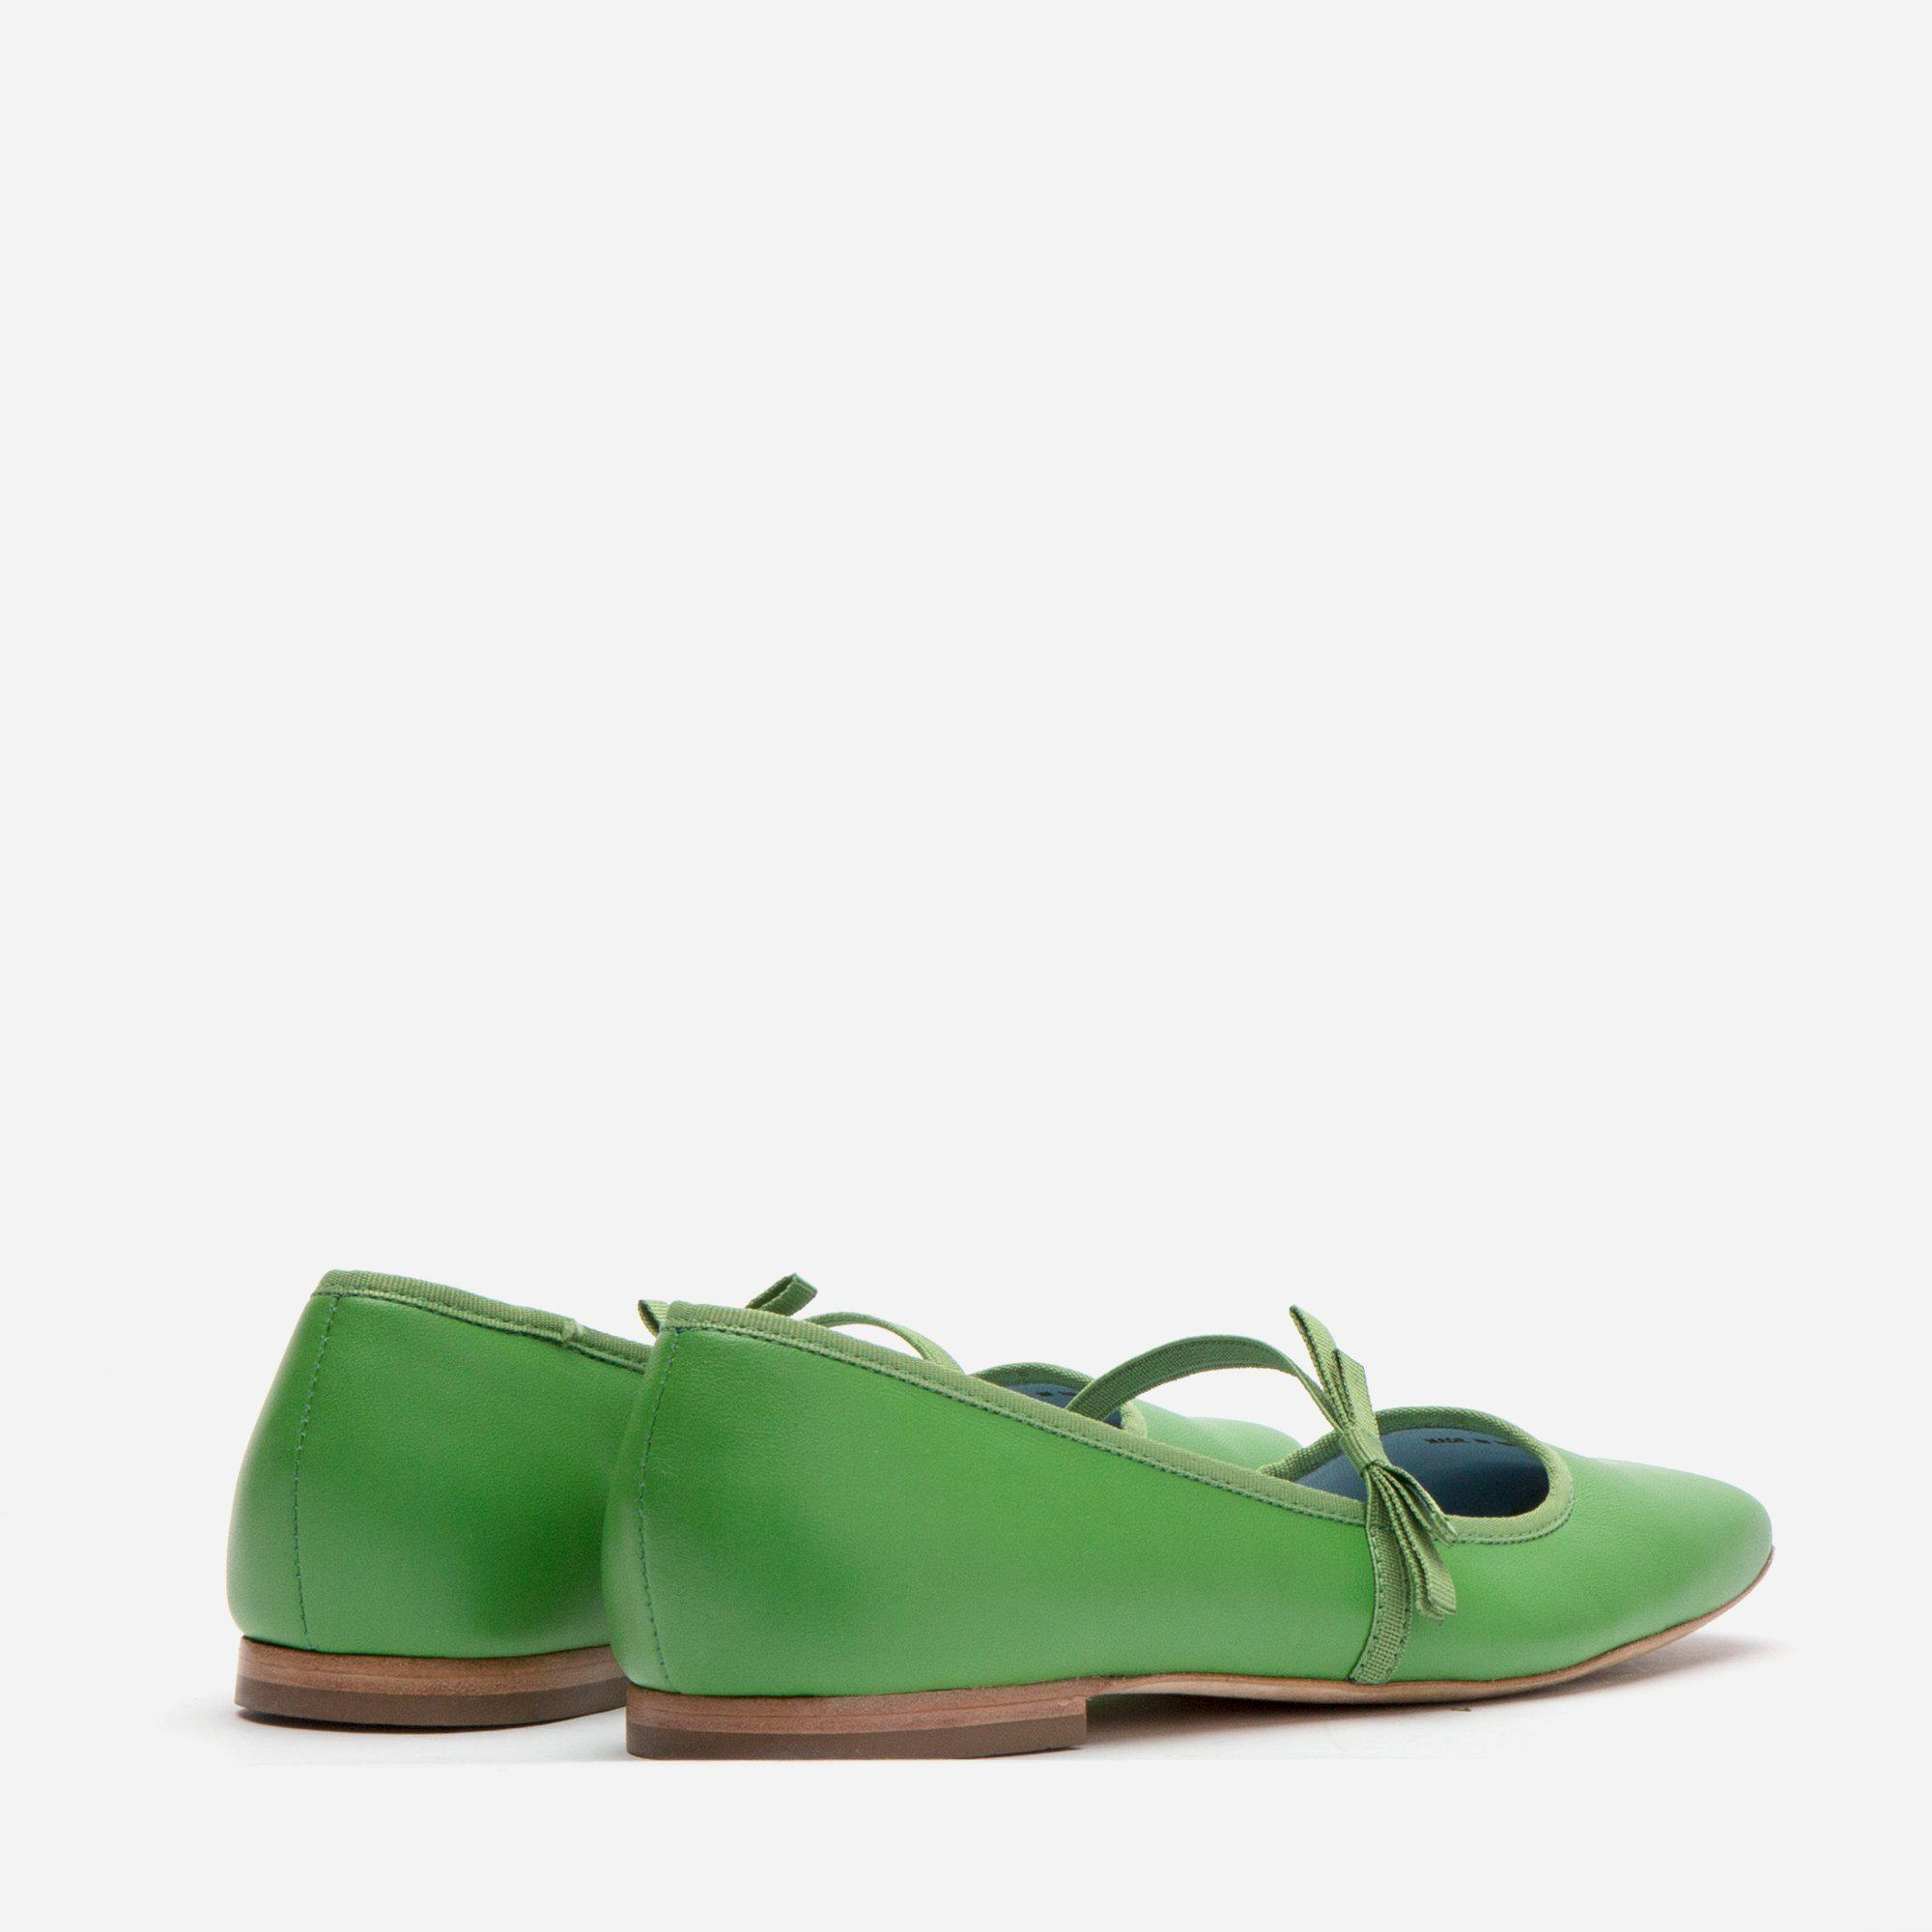 Jude Mary Jane Leather Flat Green 3